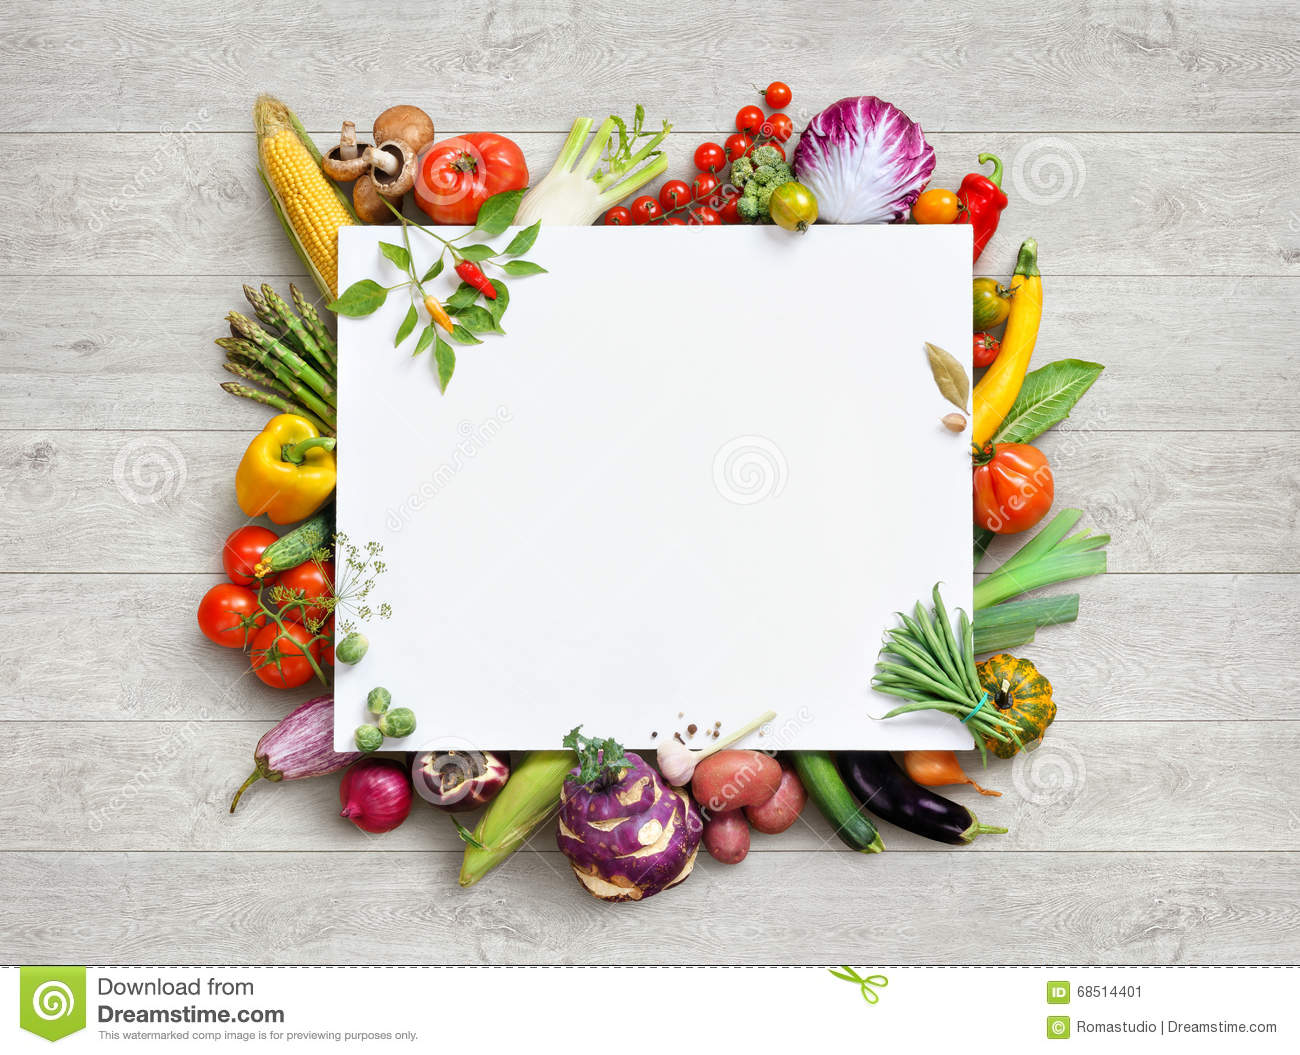 Healthy food and copy space. Studio photo of different fruits and vegetables